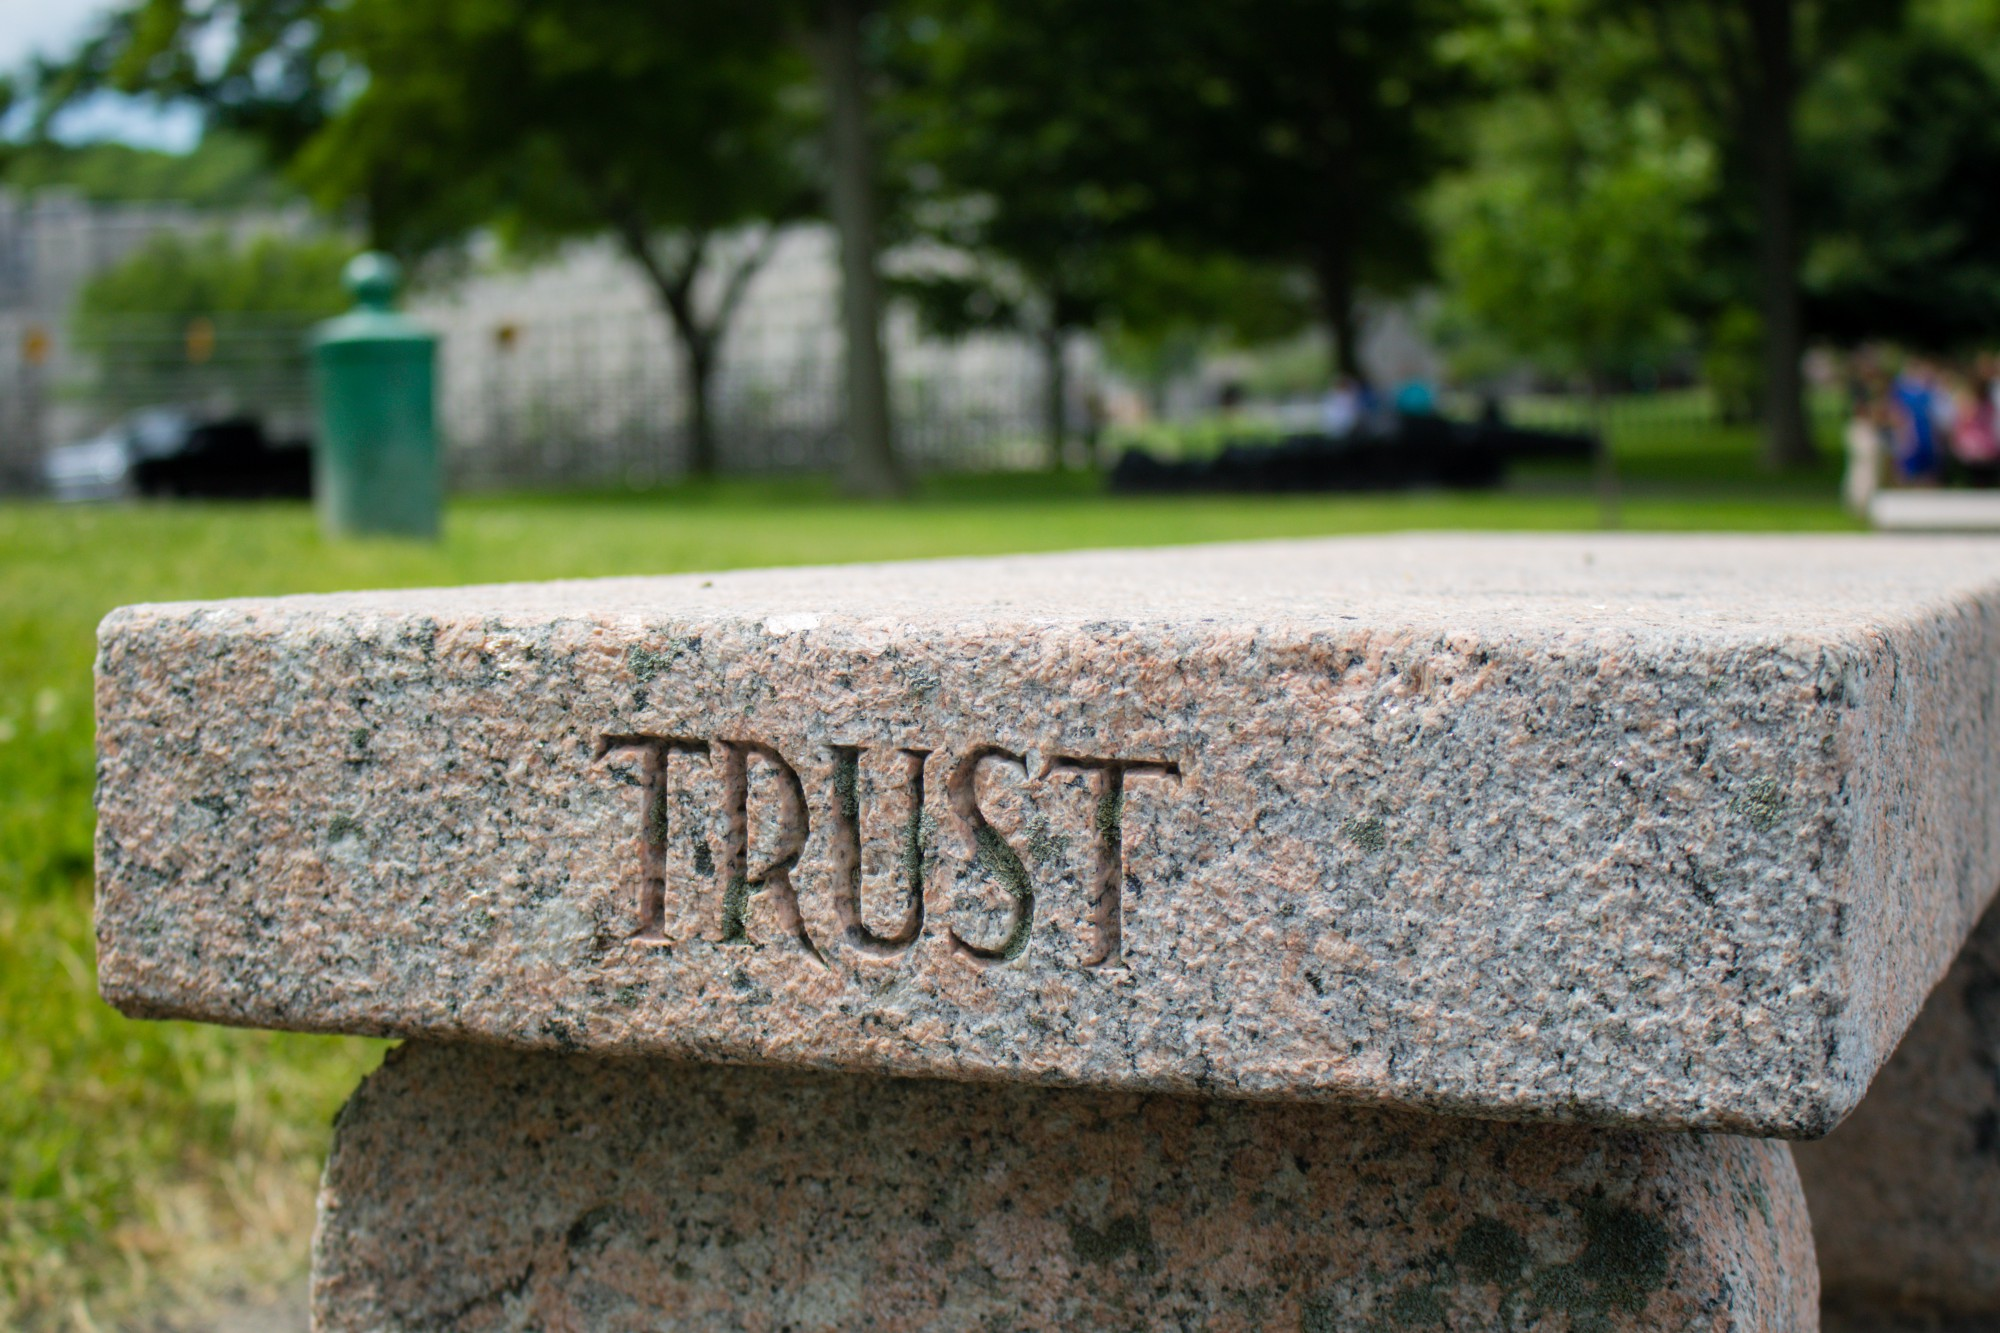 """A stone slab with the word """"Trust"""" engraved on it"""